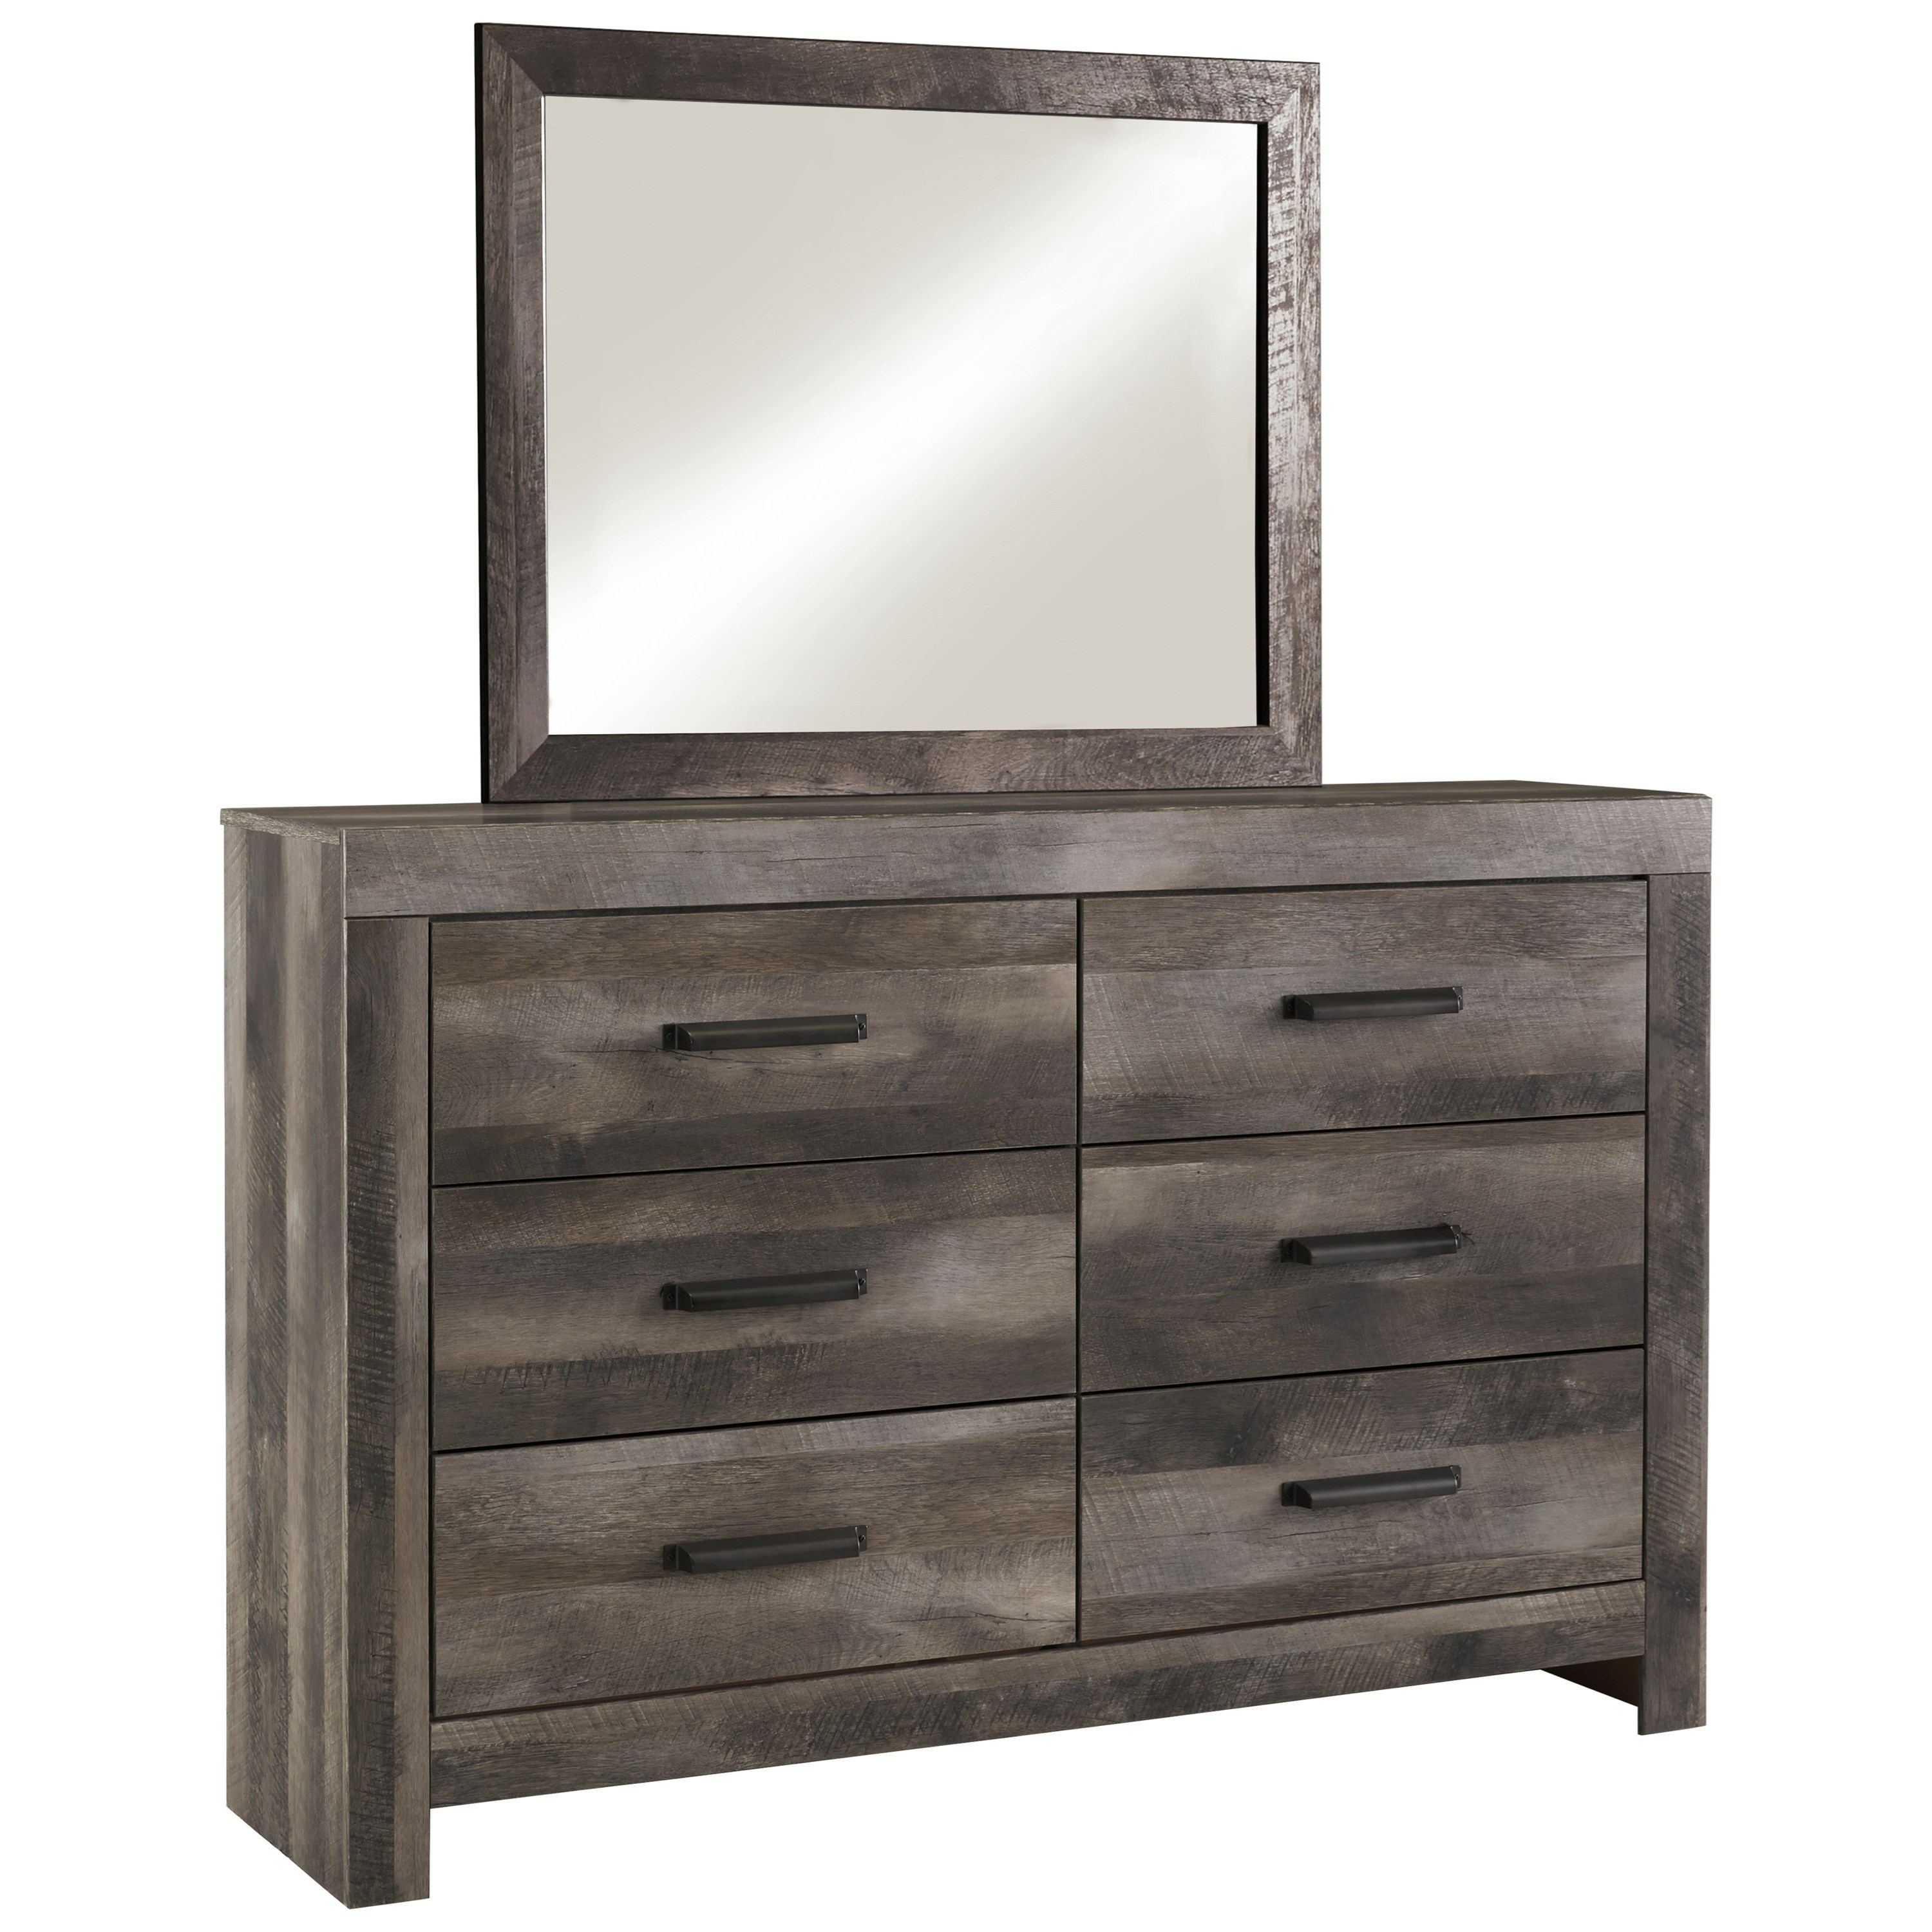 Wynnlow Dresser and Mirror Set by Signature Design by Ashley at Sparks HomeStore